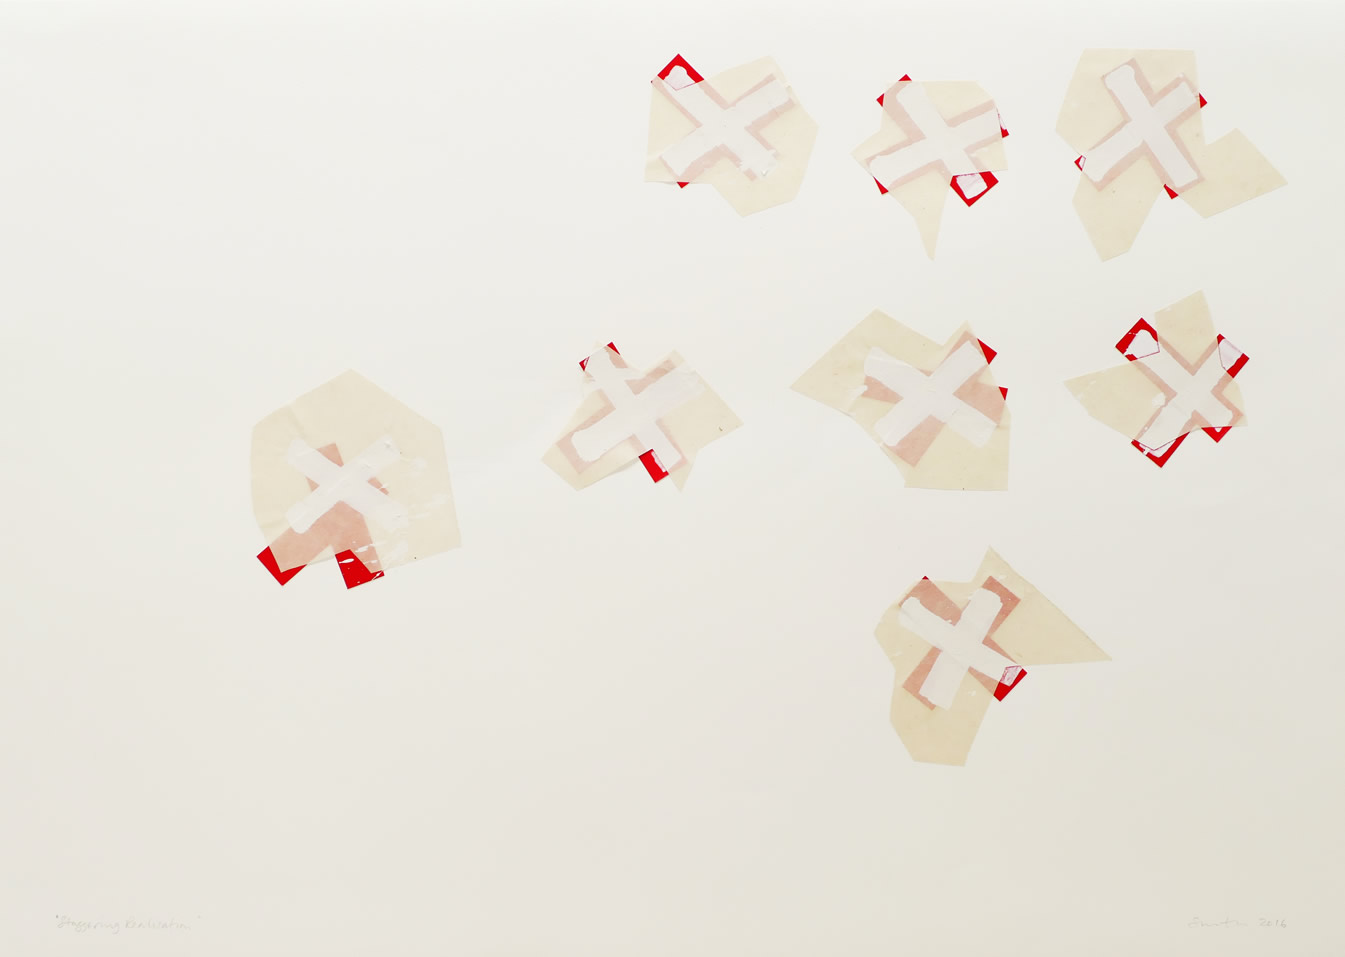 Abstract, minimalist collage by David Smith